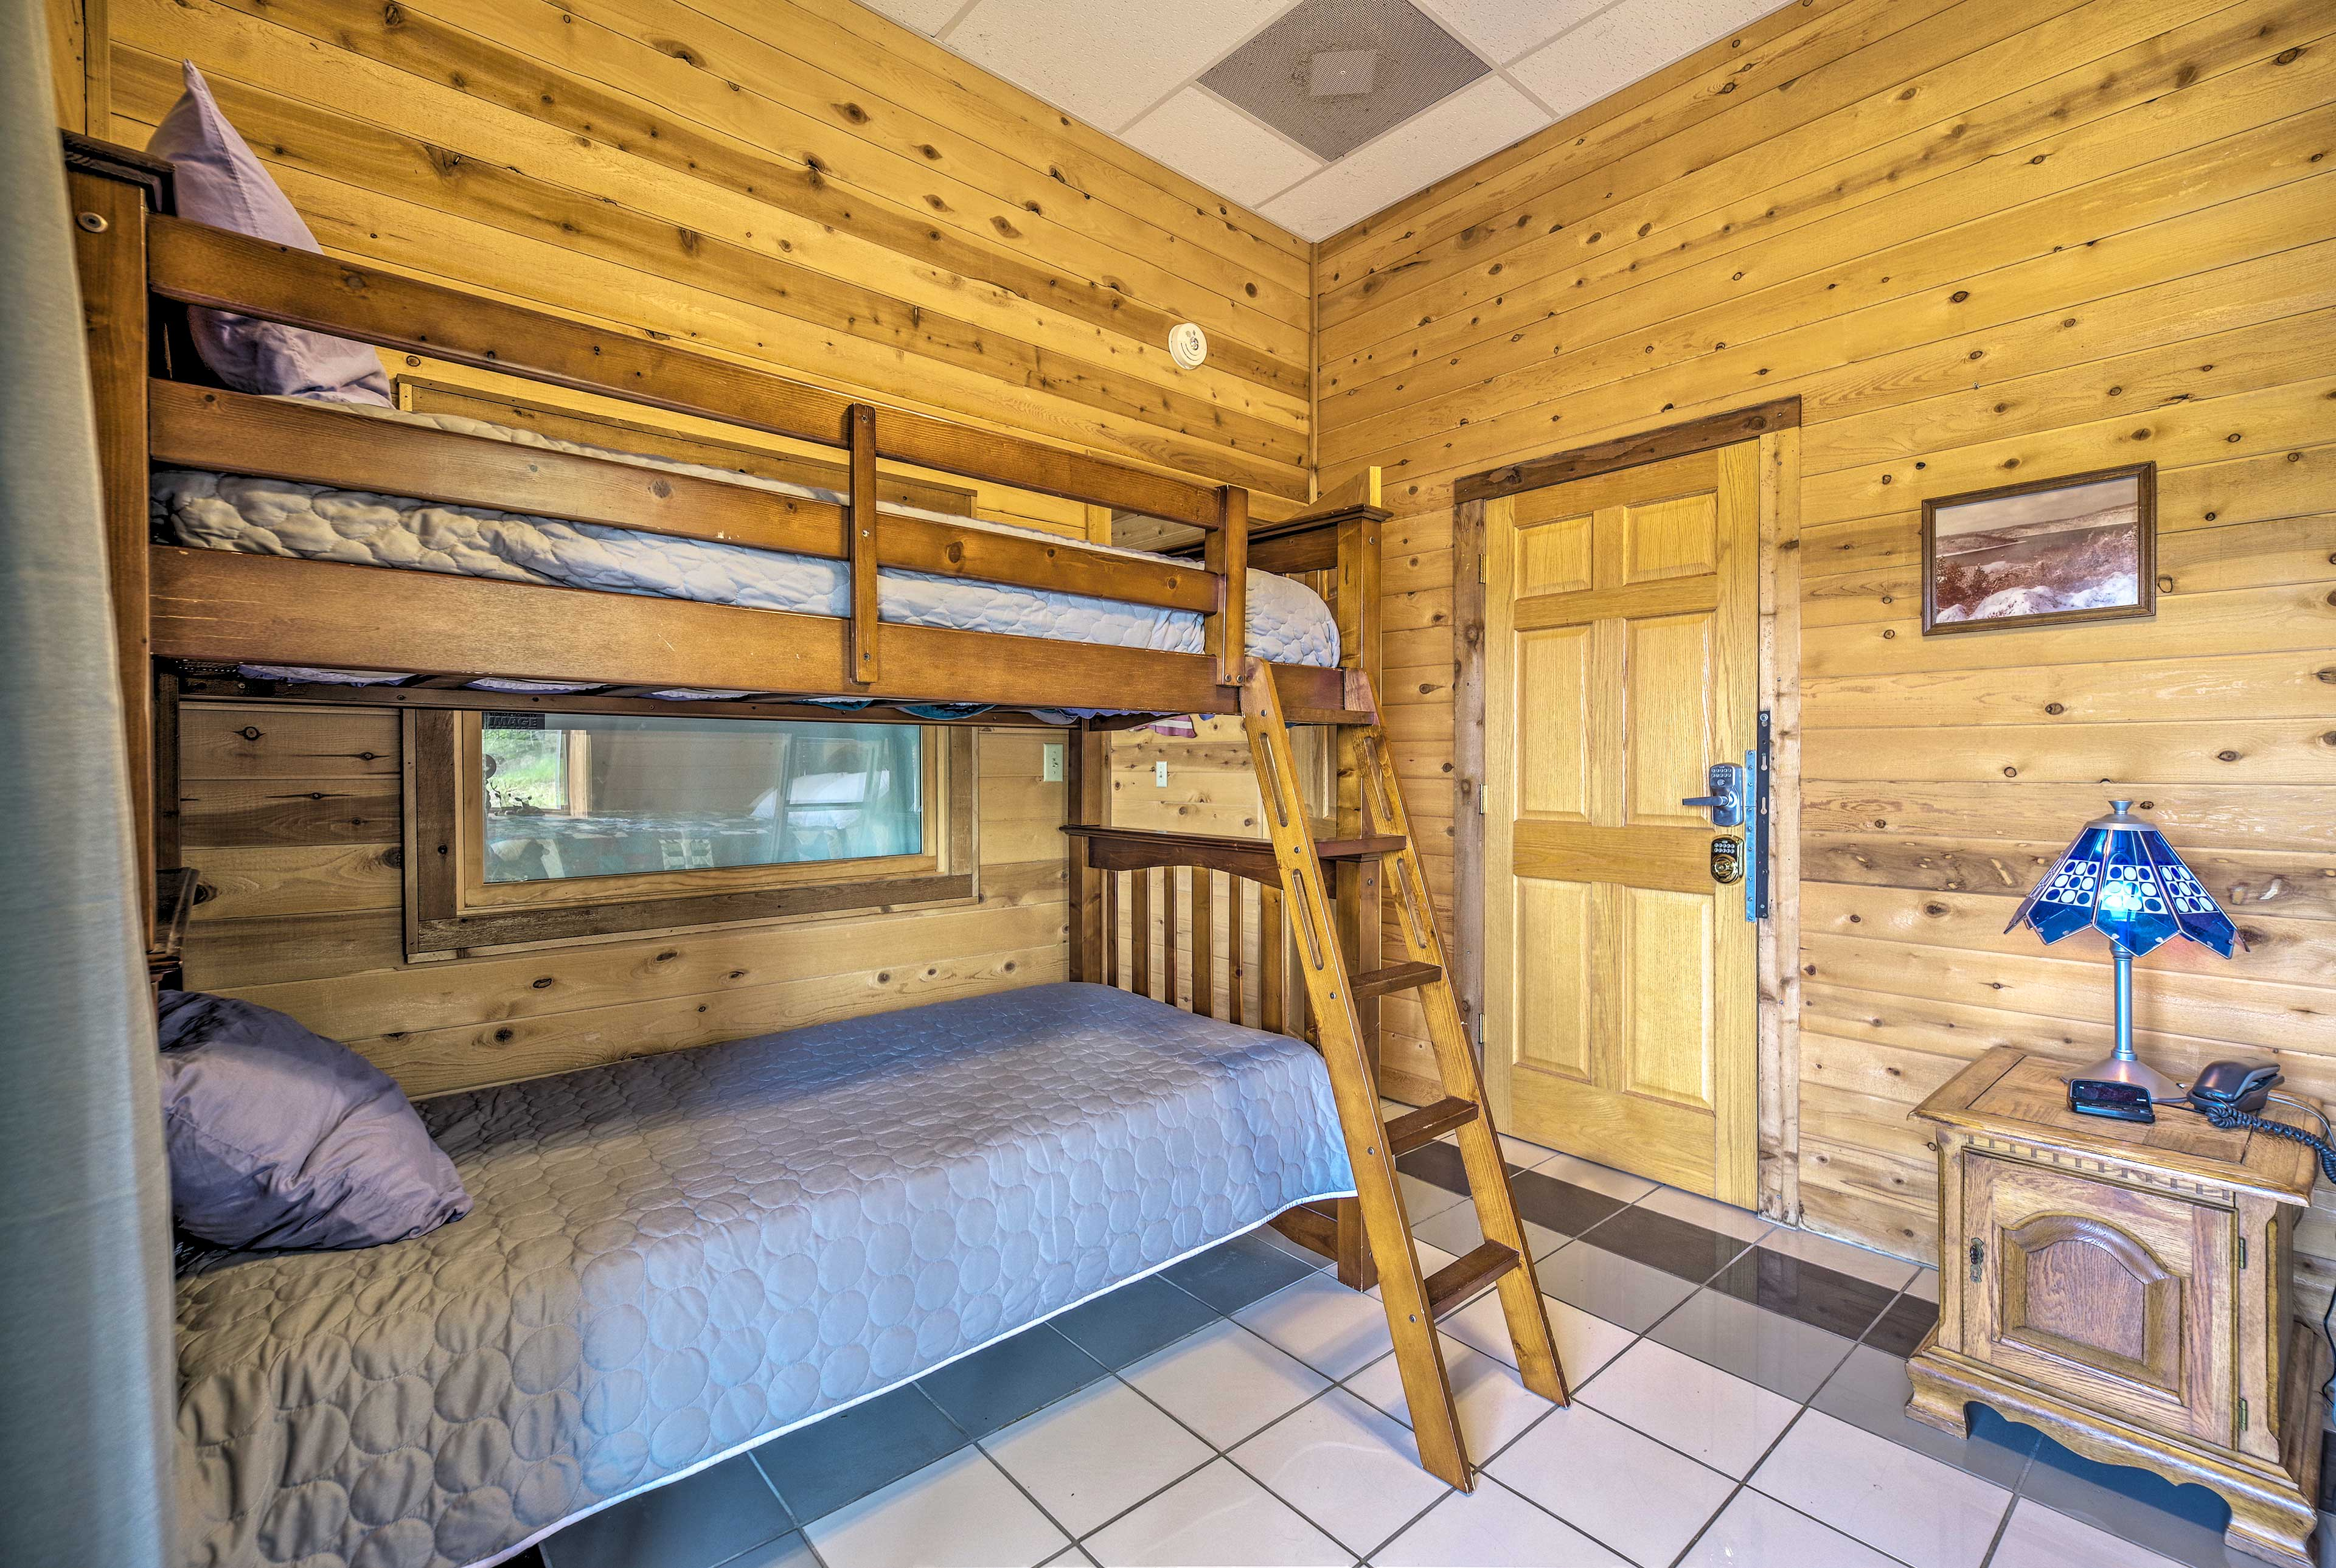 Kids will love sharing the bunk bed!